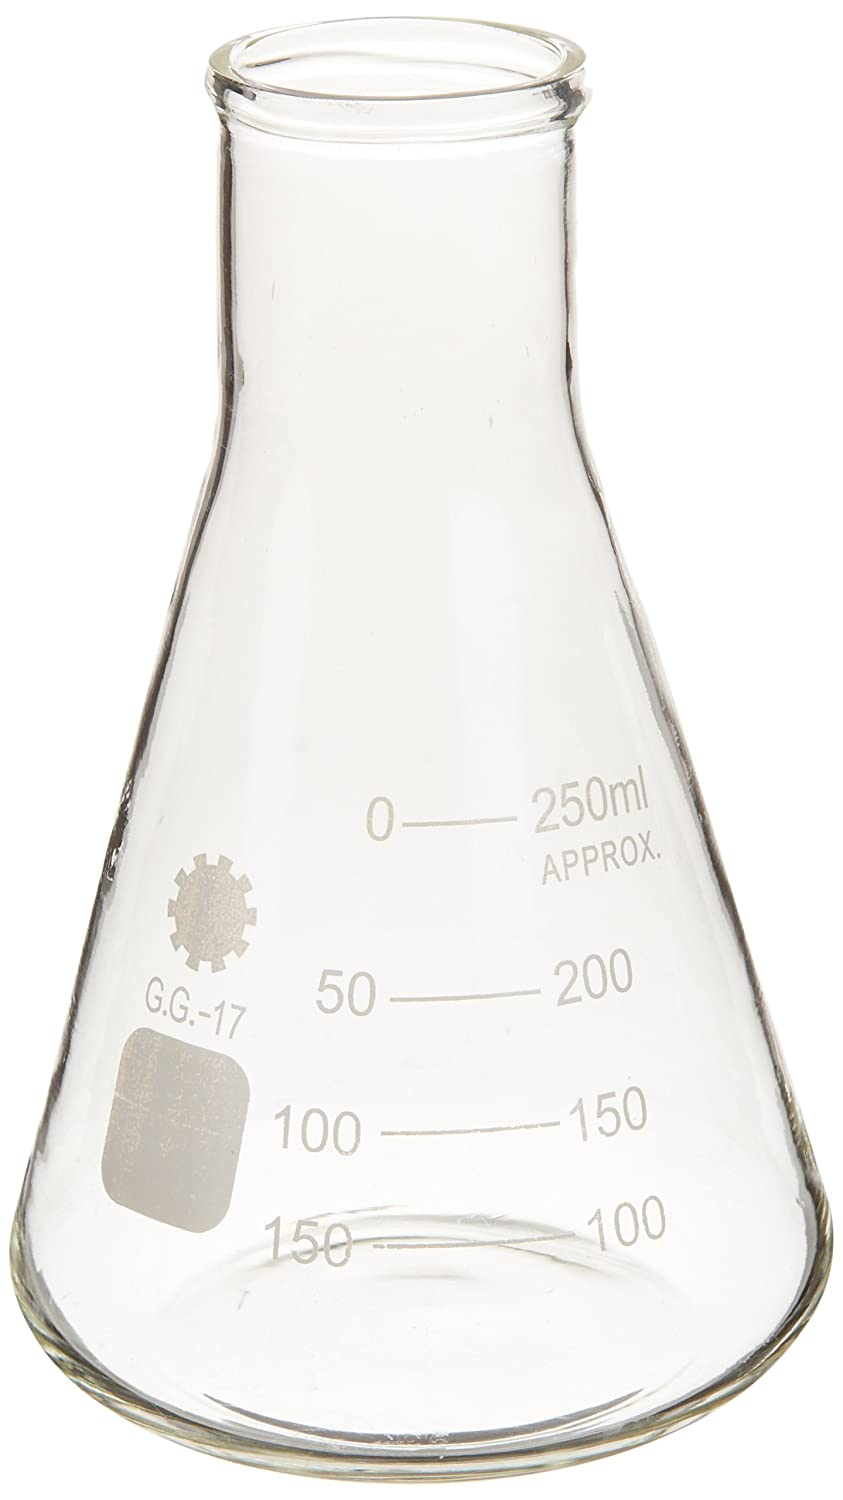 Ajax Scientific Erlenmeyer Narrow Mouth Max 52% OFF Flask and Popular brand in the world with Graduated